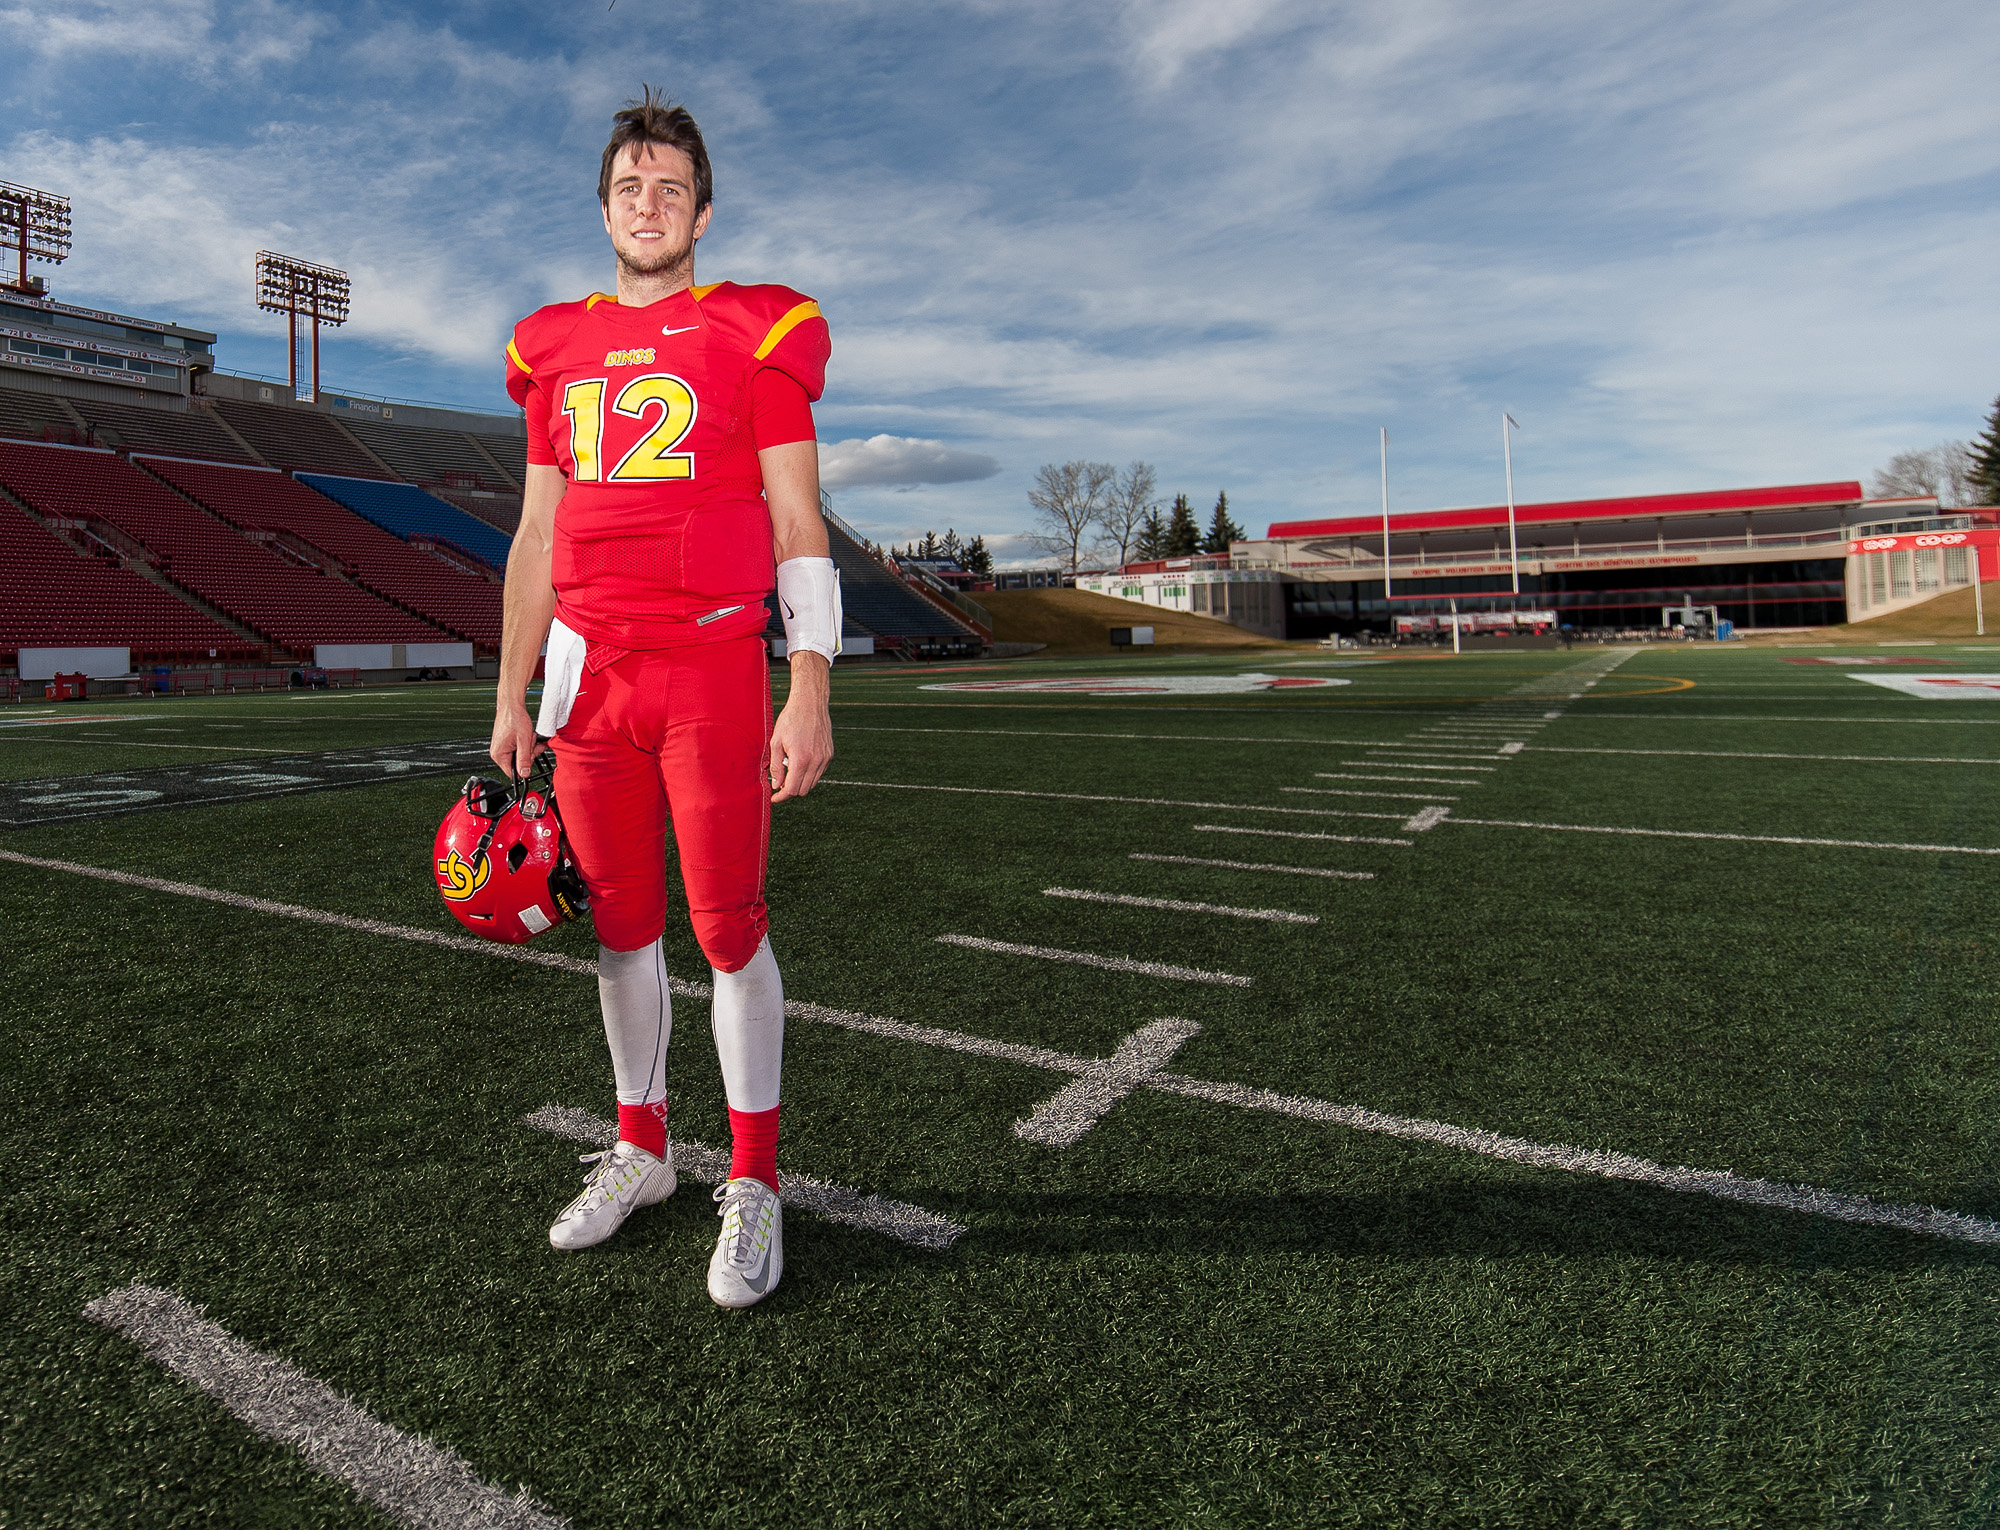 University of Calgary Dinos quarterback Adam Sinagra is off to the Hardy Cup Finals after a dominating performance against the University of Saskatchewan Huskies during football action at McMahon Stadium in Calgary on Saturday, Nov. 5, 2016. The Dinos finished the semifinal game 47-17 with Sinagra throwing three touchdowns and 271 yards.(Photo by Maxwell Mawji/ www.CaptureCandy.com)